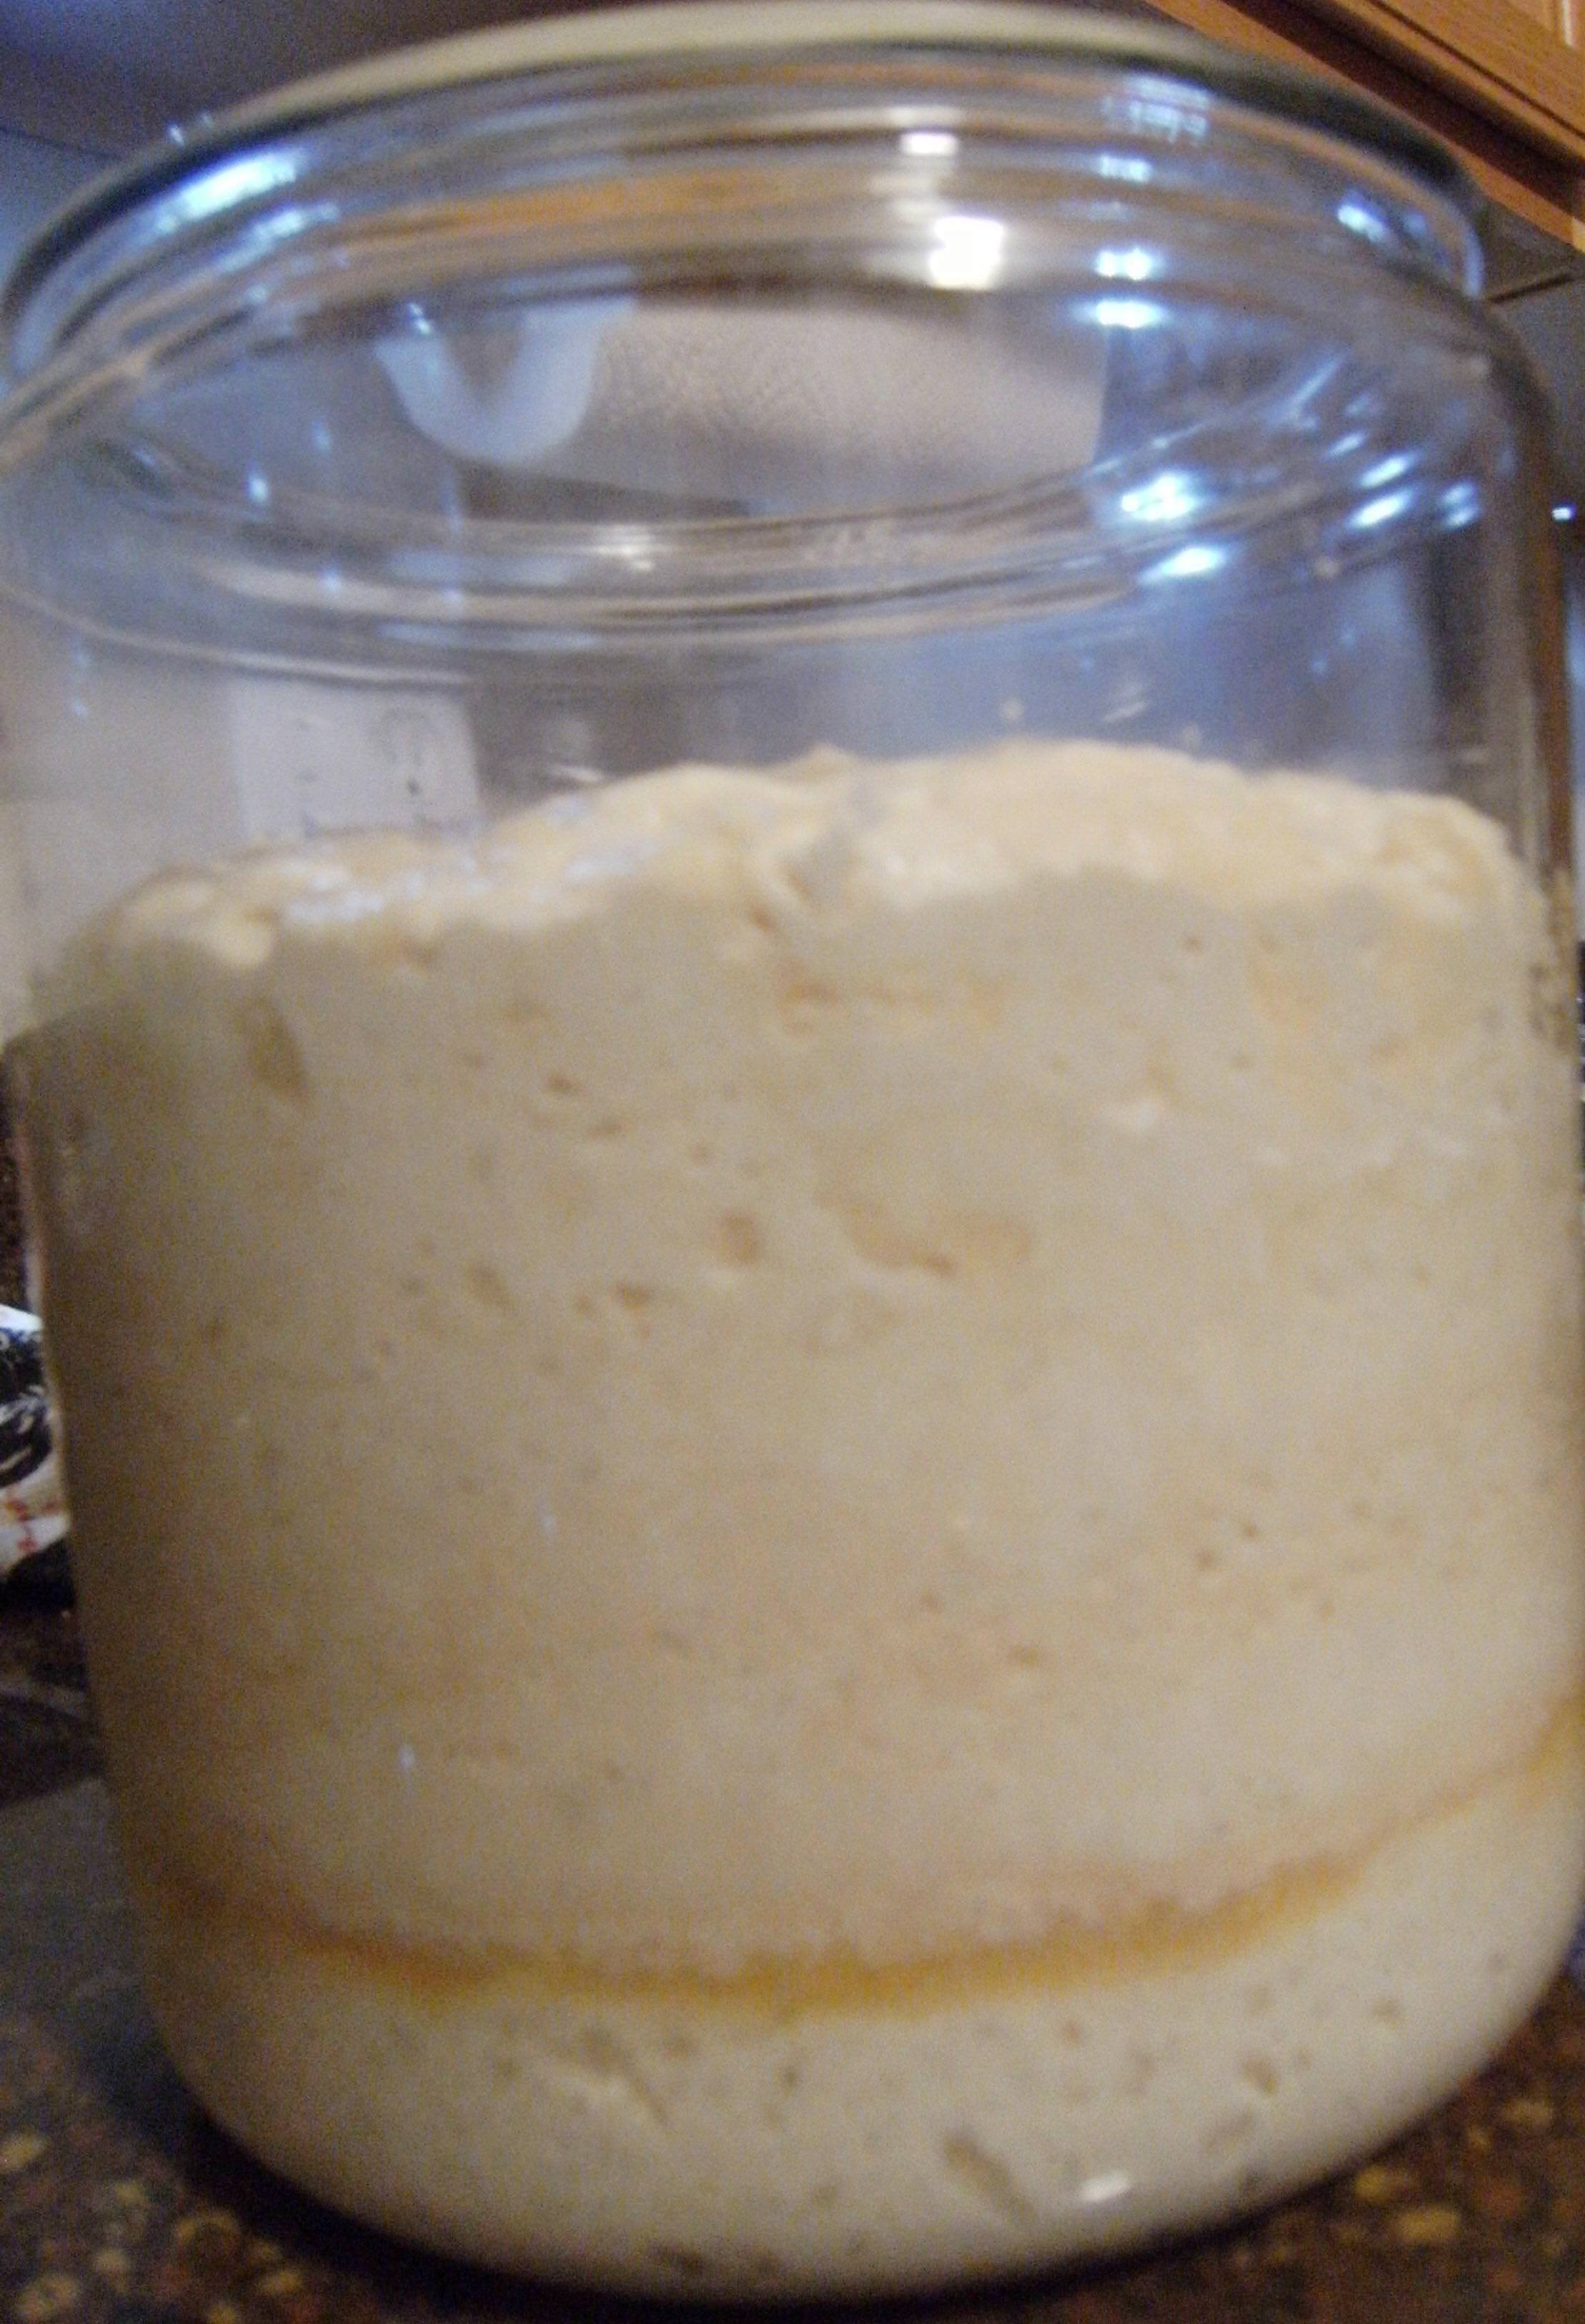 homemade sourdough sponge as it's growing